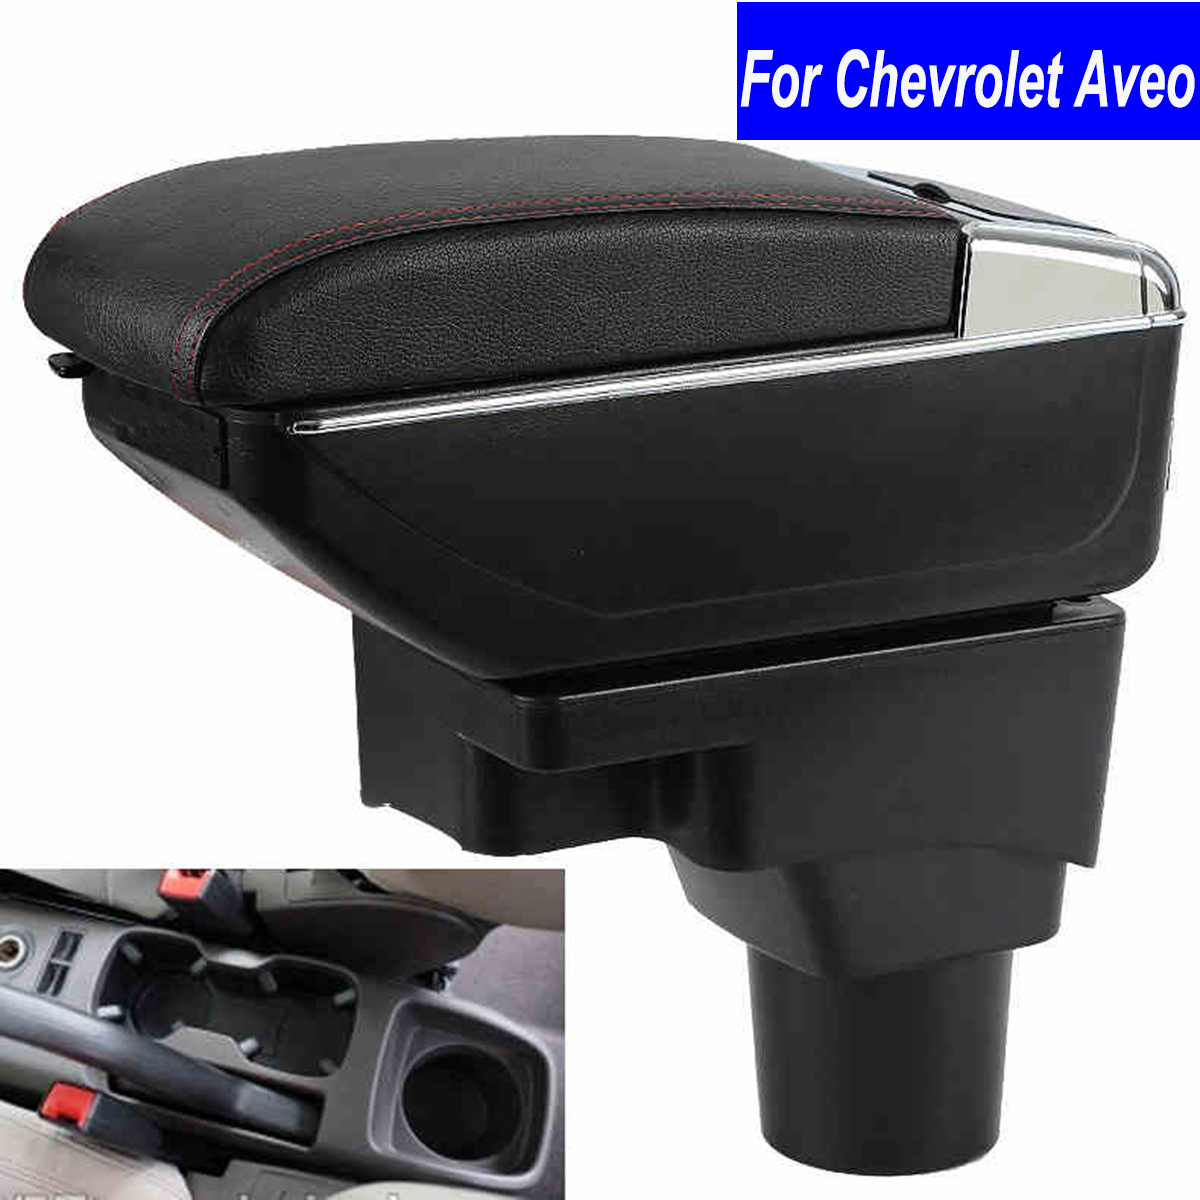 Leather Car Center Console Armrests Storage Box for Chevrolet Aveo 2011 2012 2013 2014 2015 2016  Auto Parts Free Shipping защита картера штамповка 2 мм chevrolet aveo t250 2008 2011 all